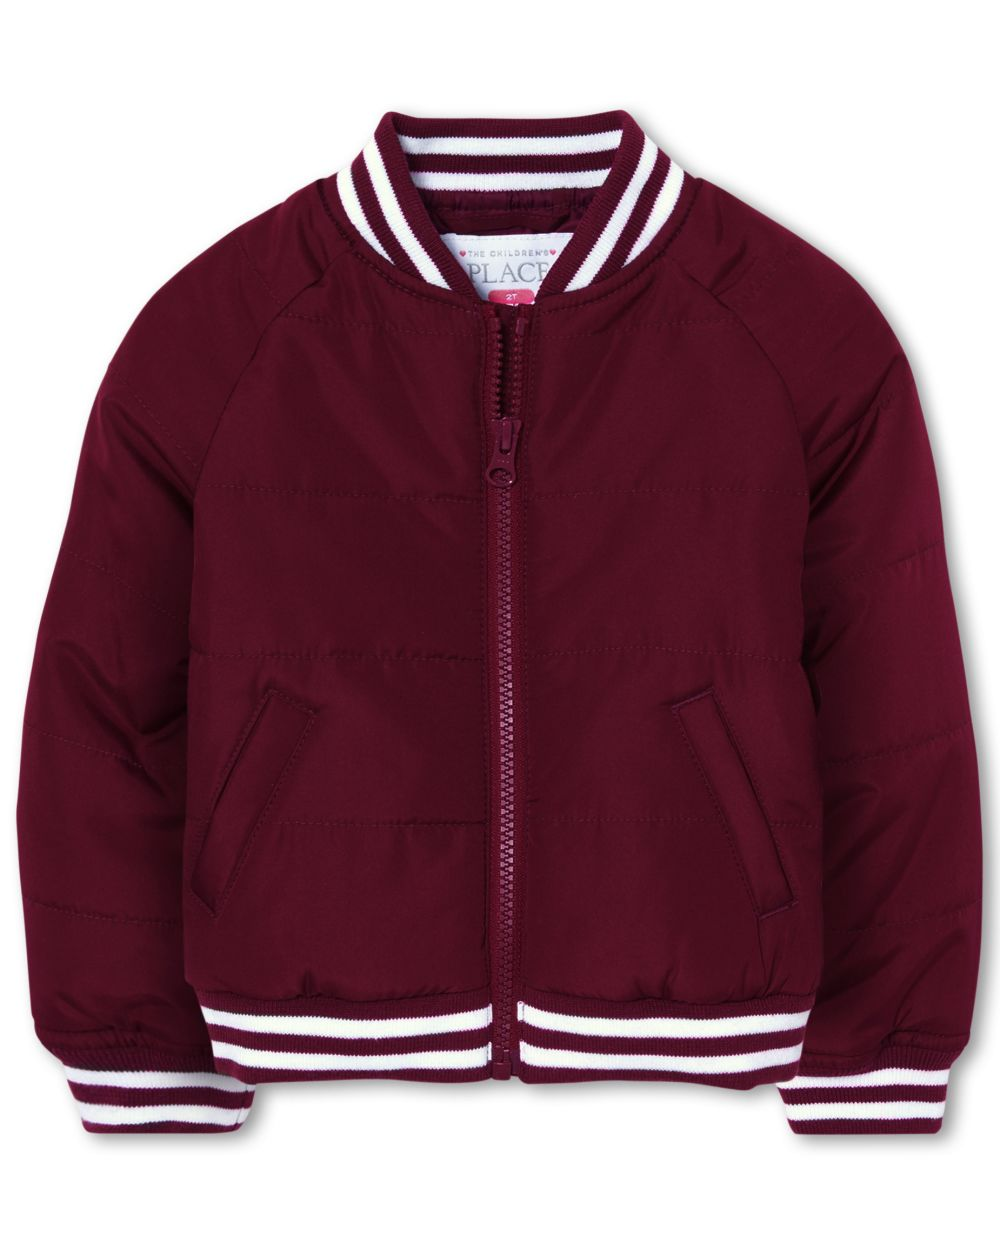 Toddler Girls Uniform Bomber Jacket